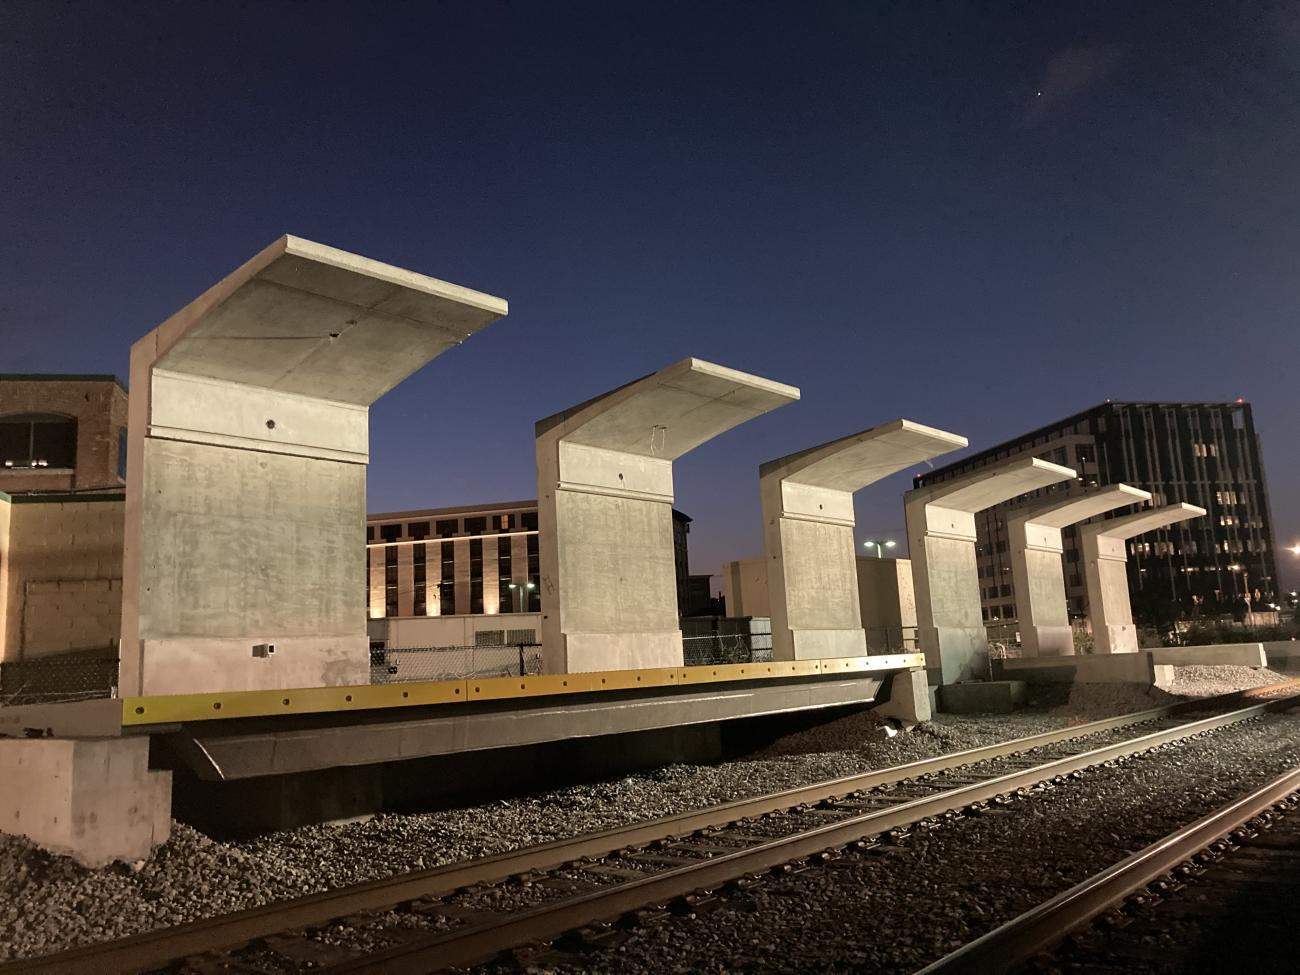 At night, partially installed train platforms and large concrete overhangs at the new Chelsea Commuter Rail station.